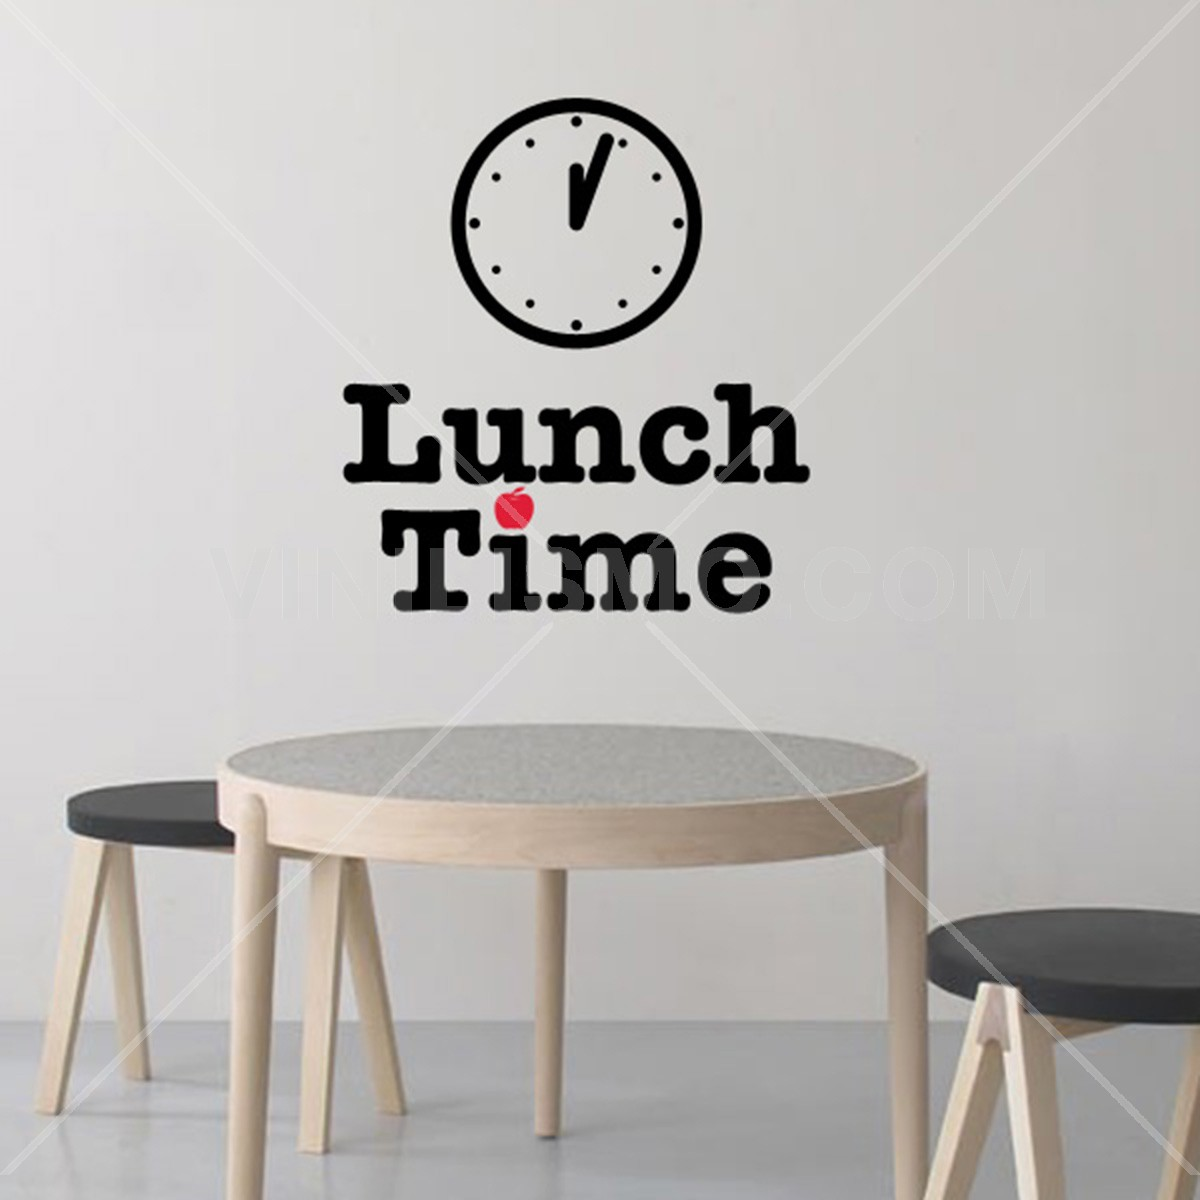 Vinilo Decorativo: Lunch Time